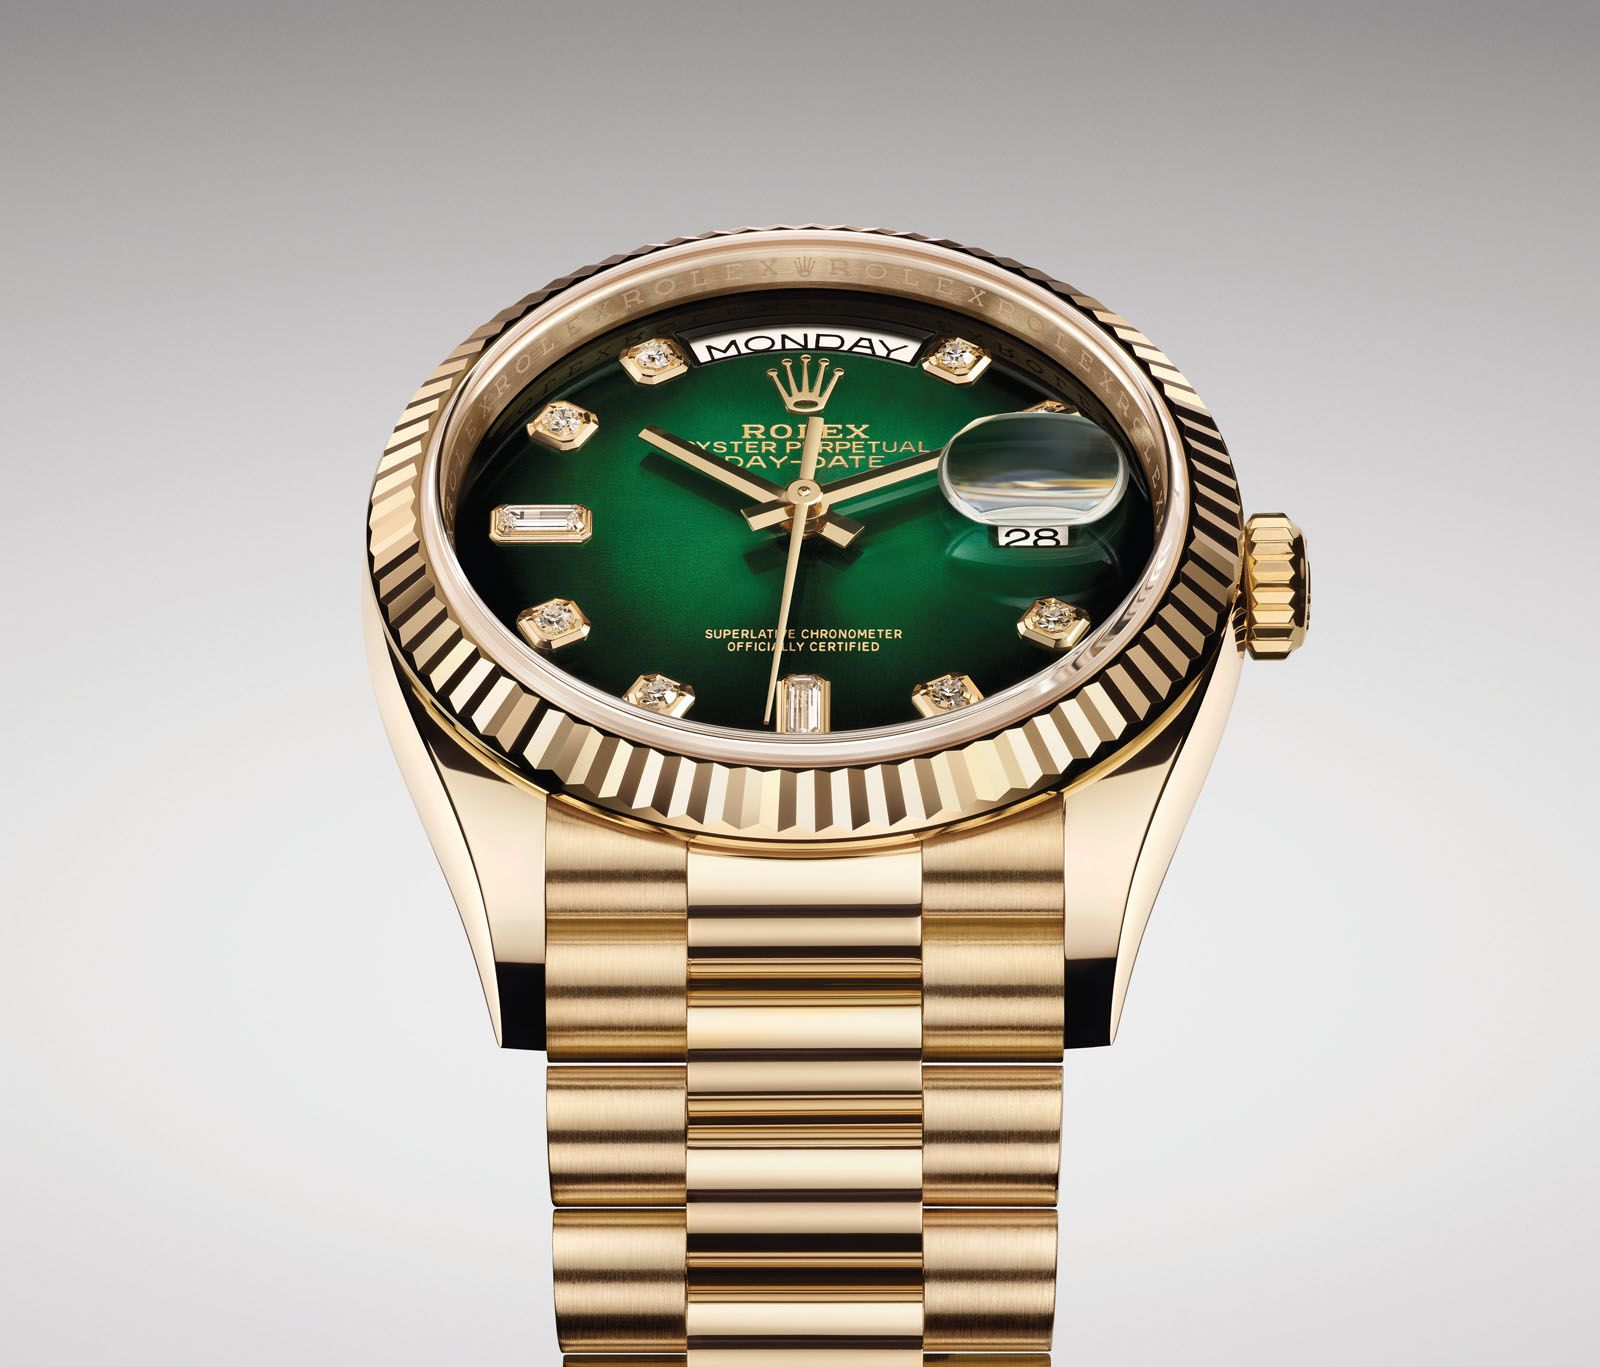 The 18K yellow gold variant of the Rolex Oyster Perpetual Day-Date 36 comes with a green ombre dial